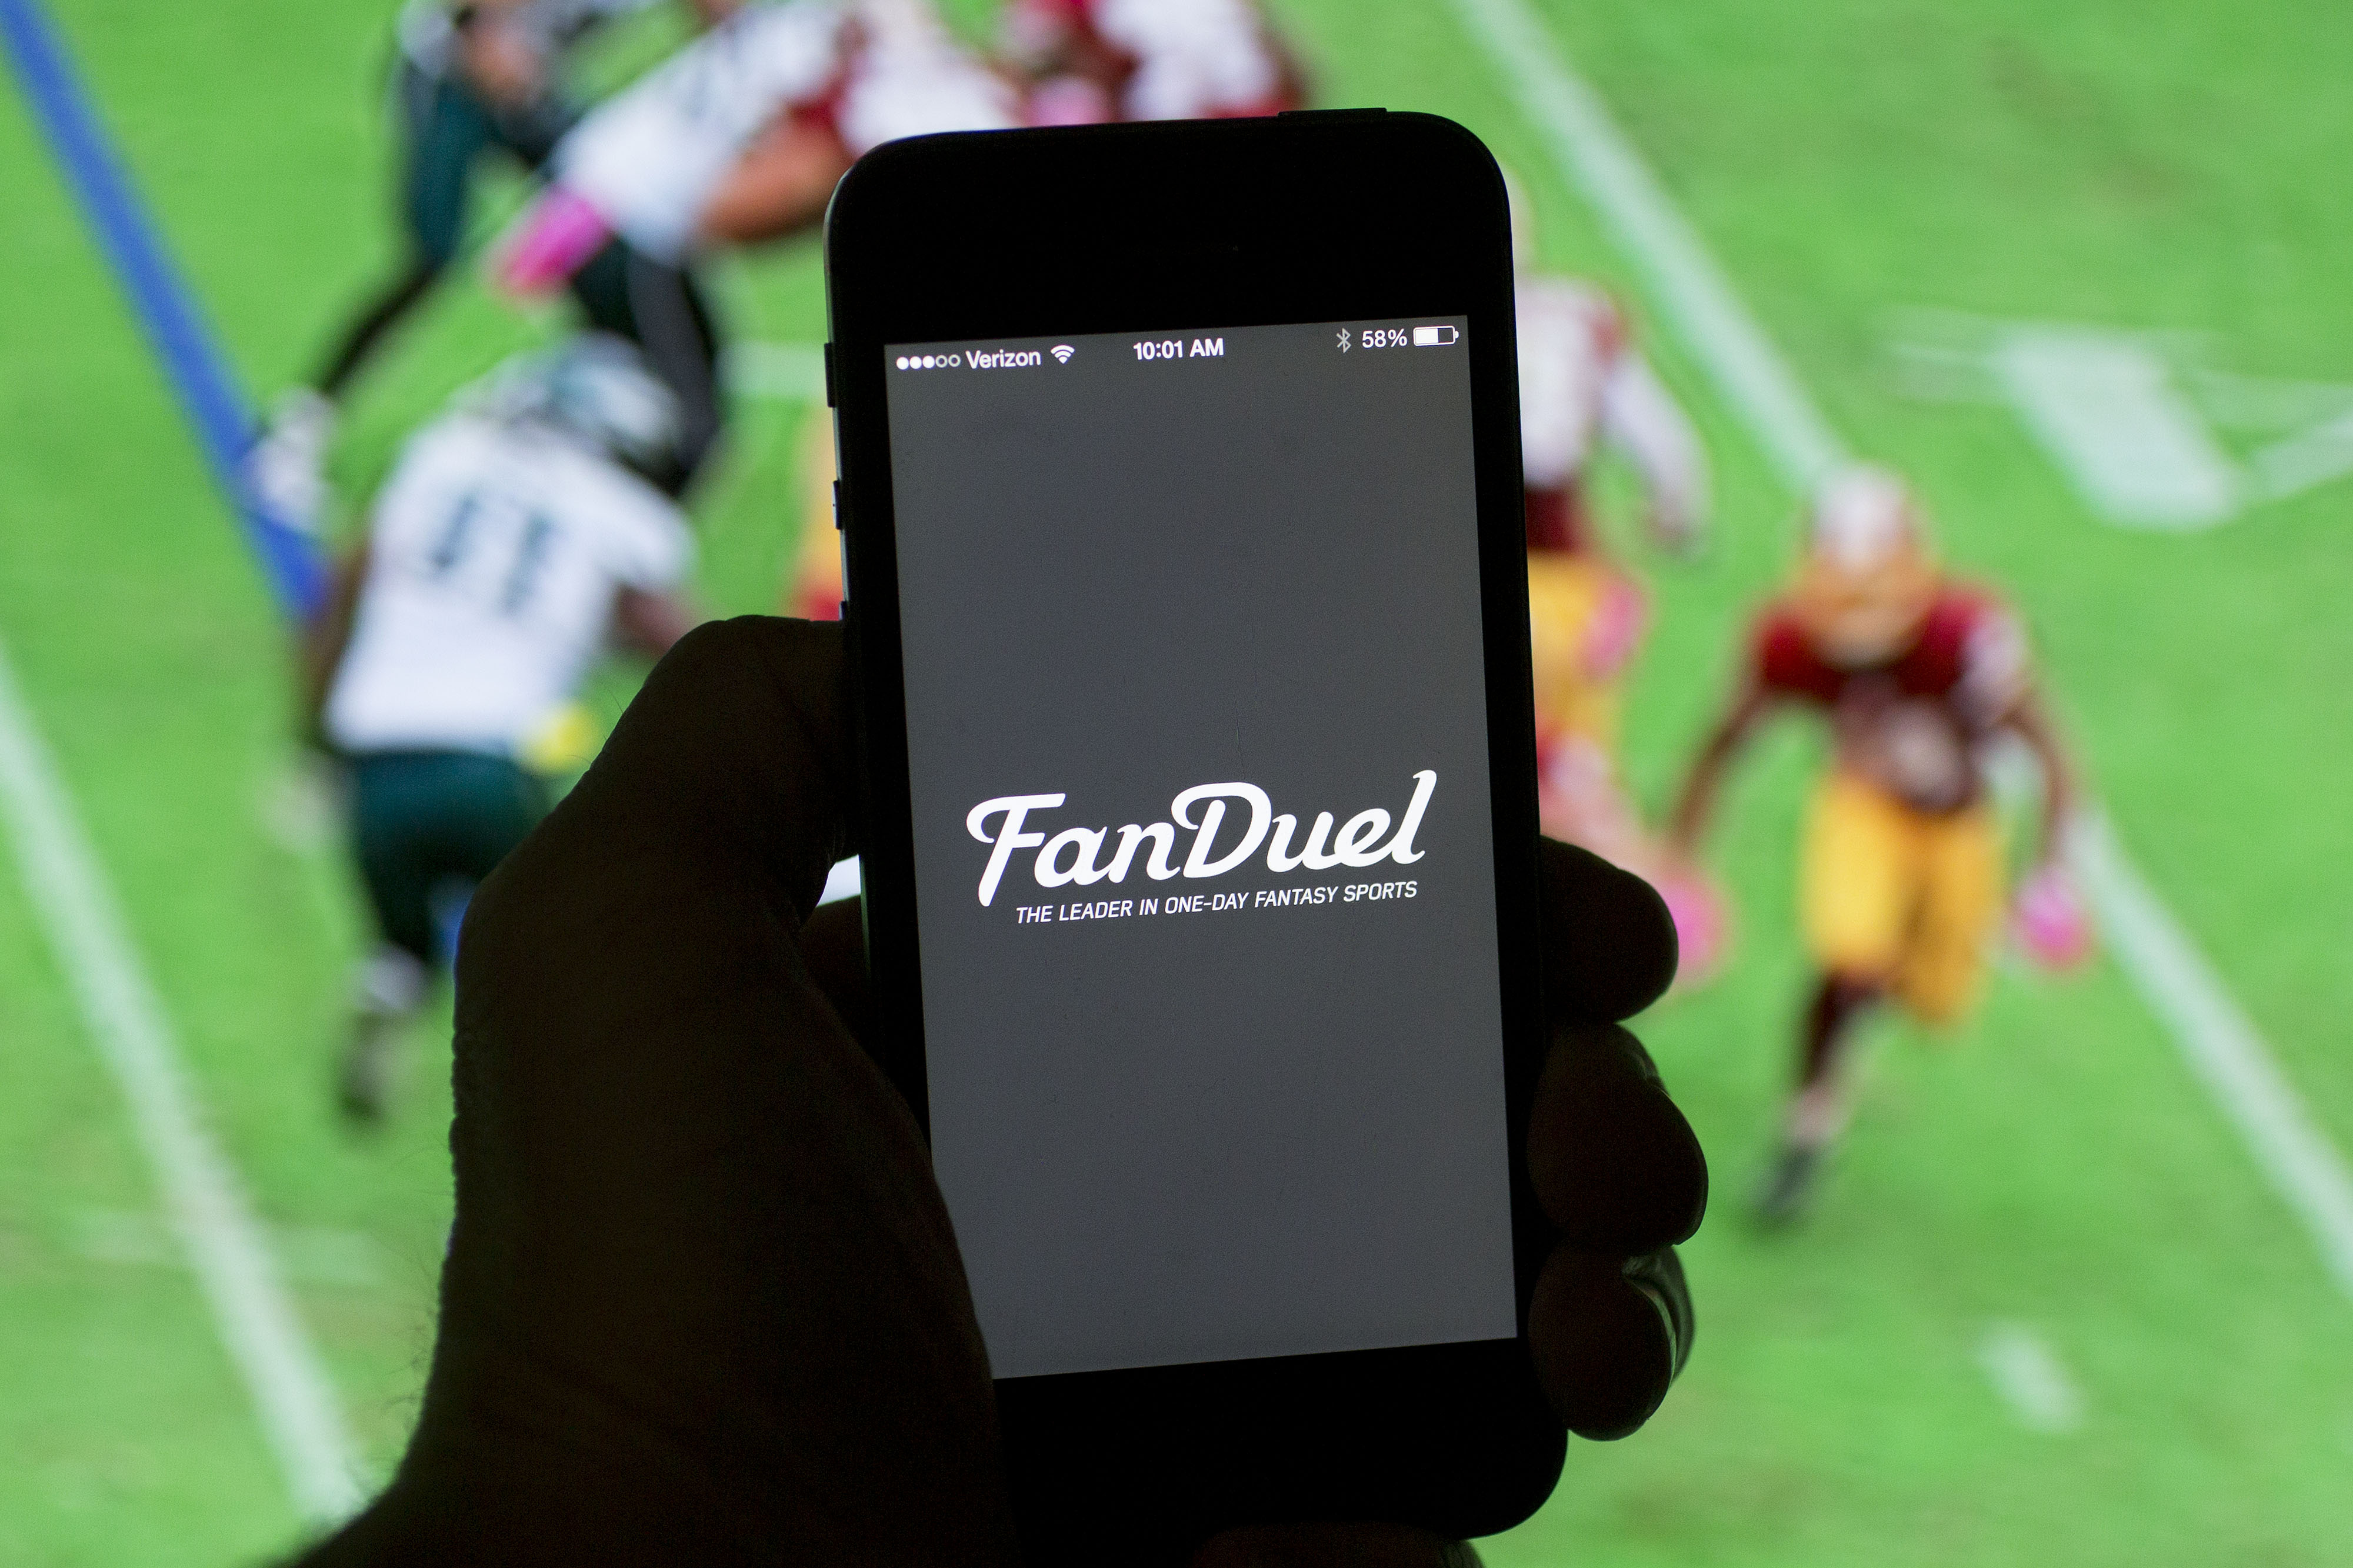 30ff6da26 Daily fantasy sites like FanDuel are projected to generate $2.5 billion in  revenue by 2020.